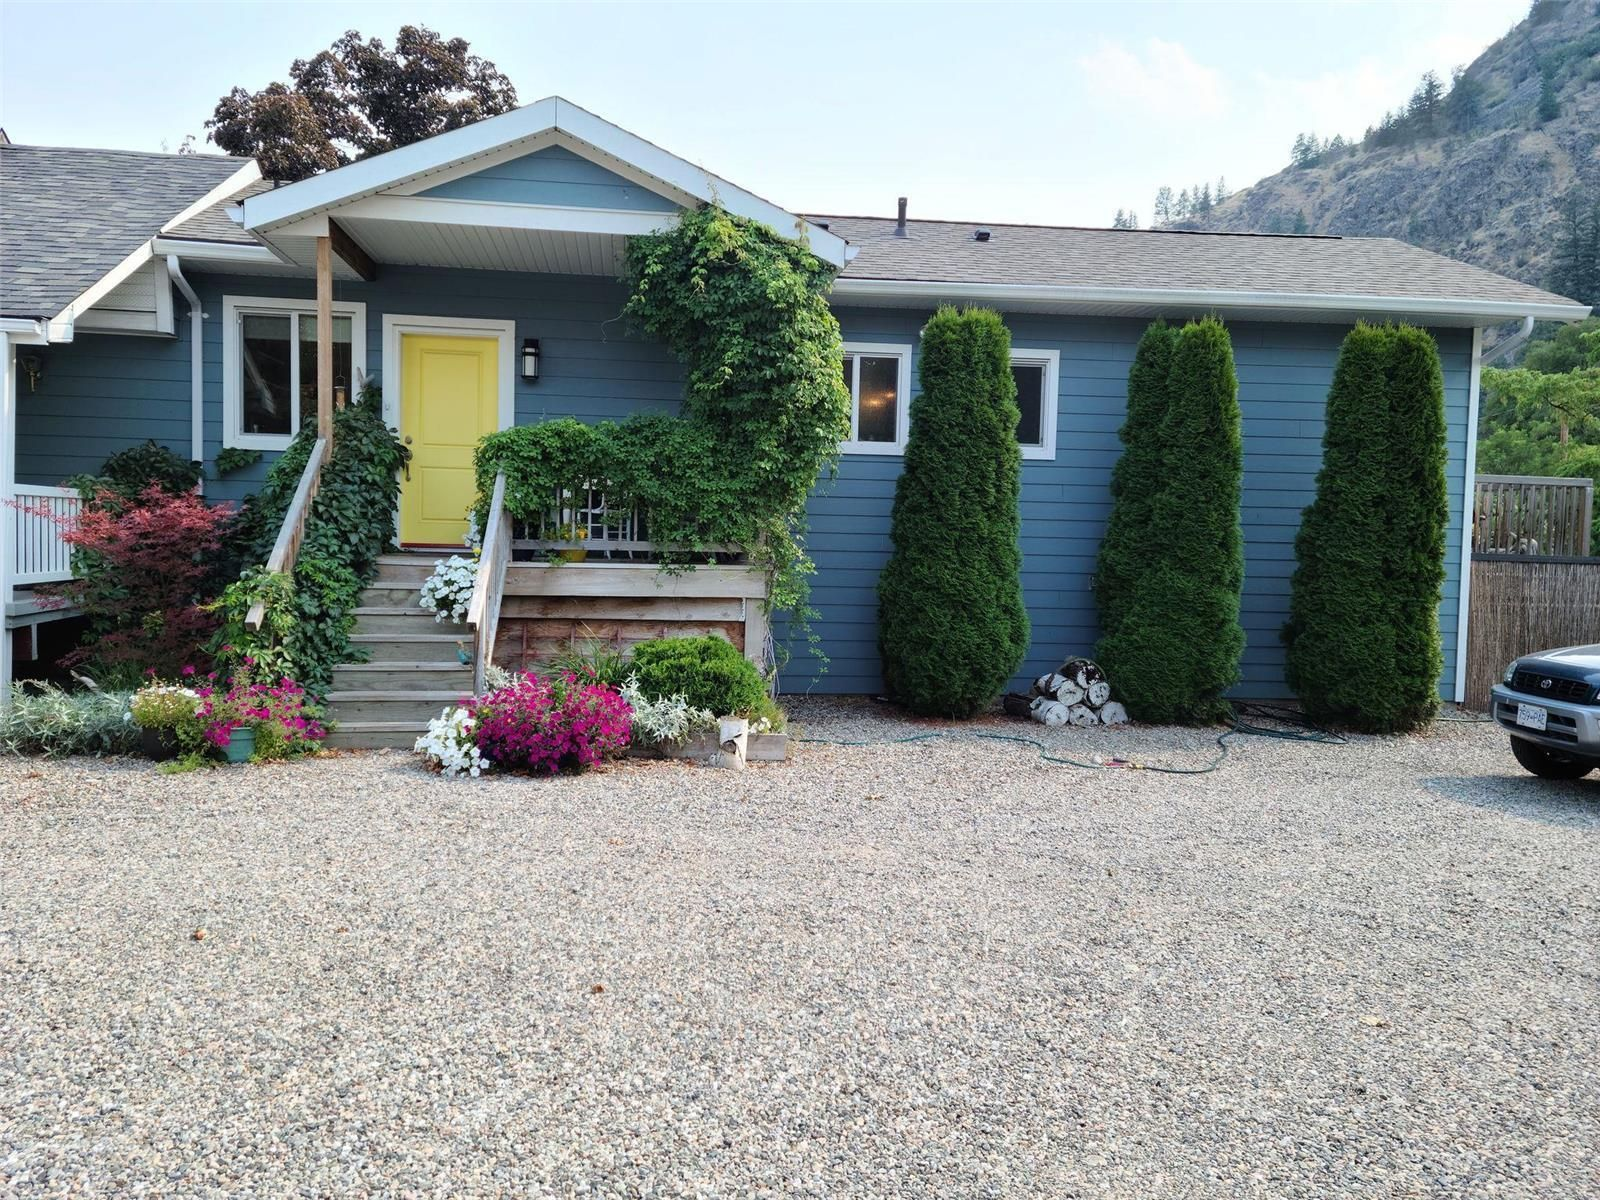 Main Photo: 443 Ridgeview Road, in Oliver: Institutional - Special Purpose for sale : MLS®# 10241046